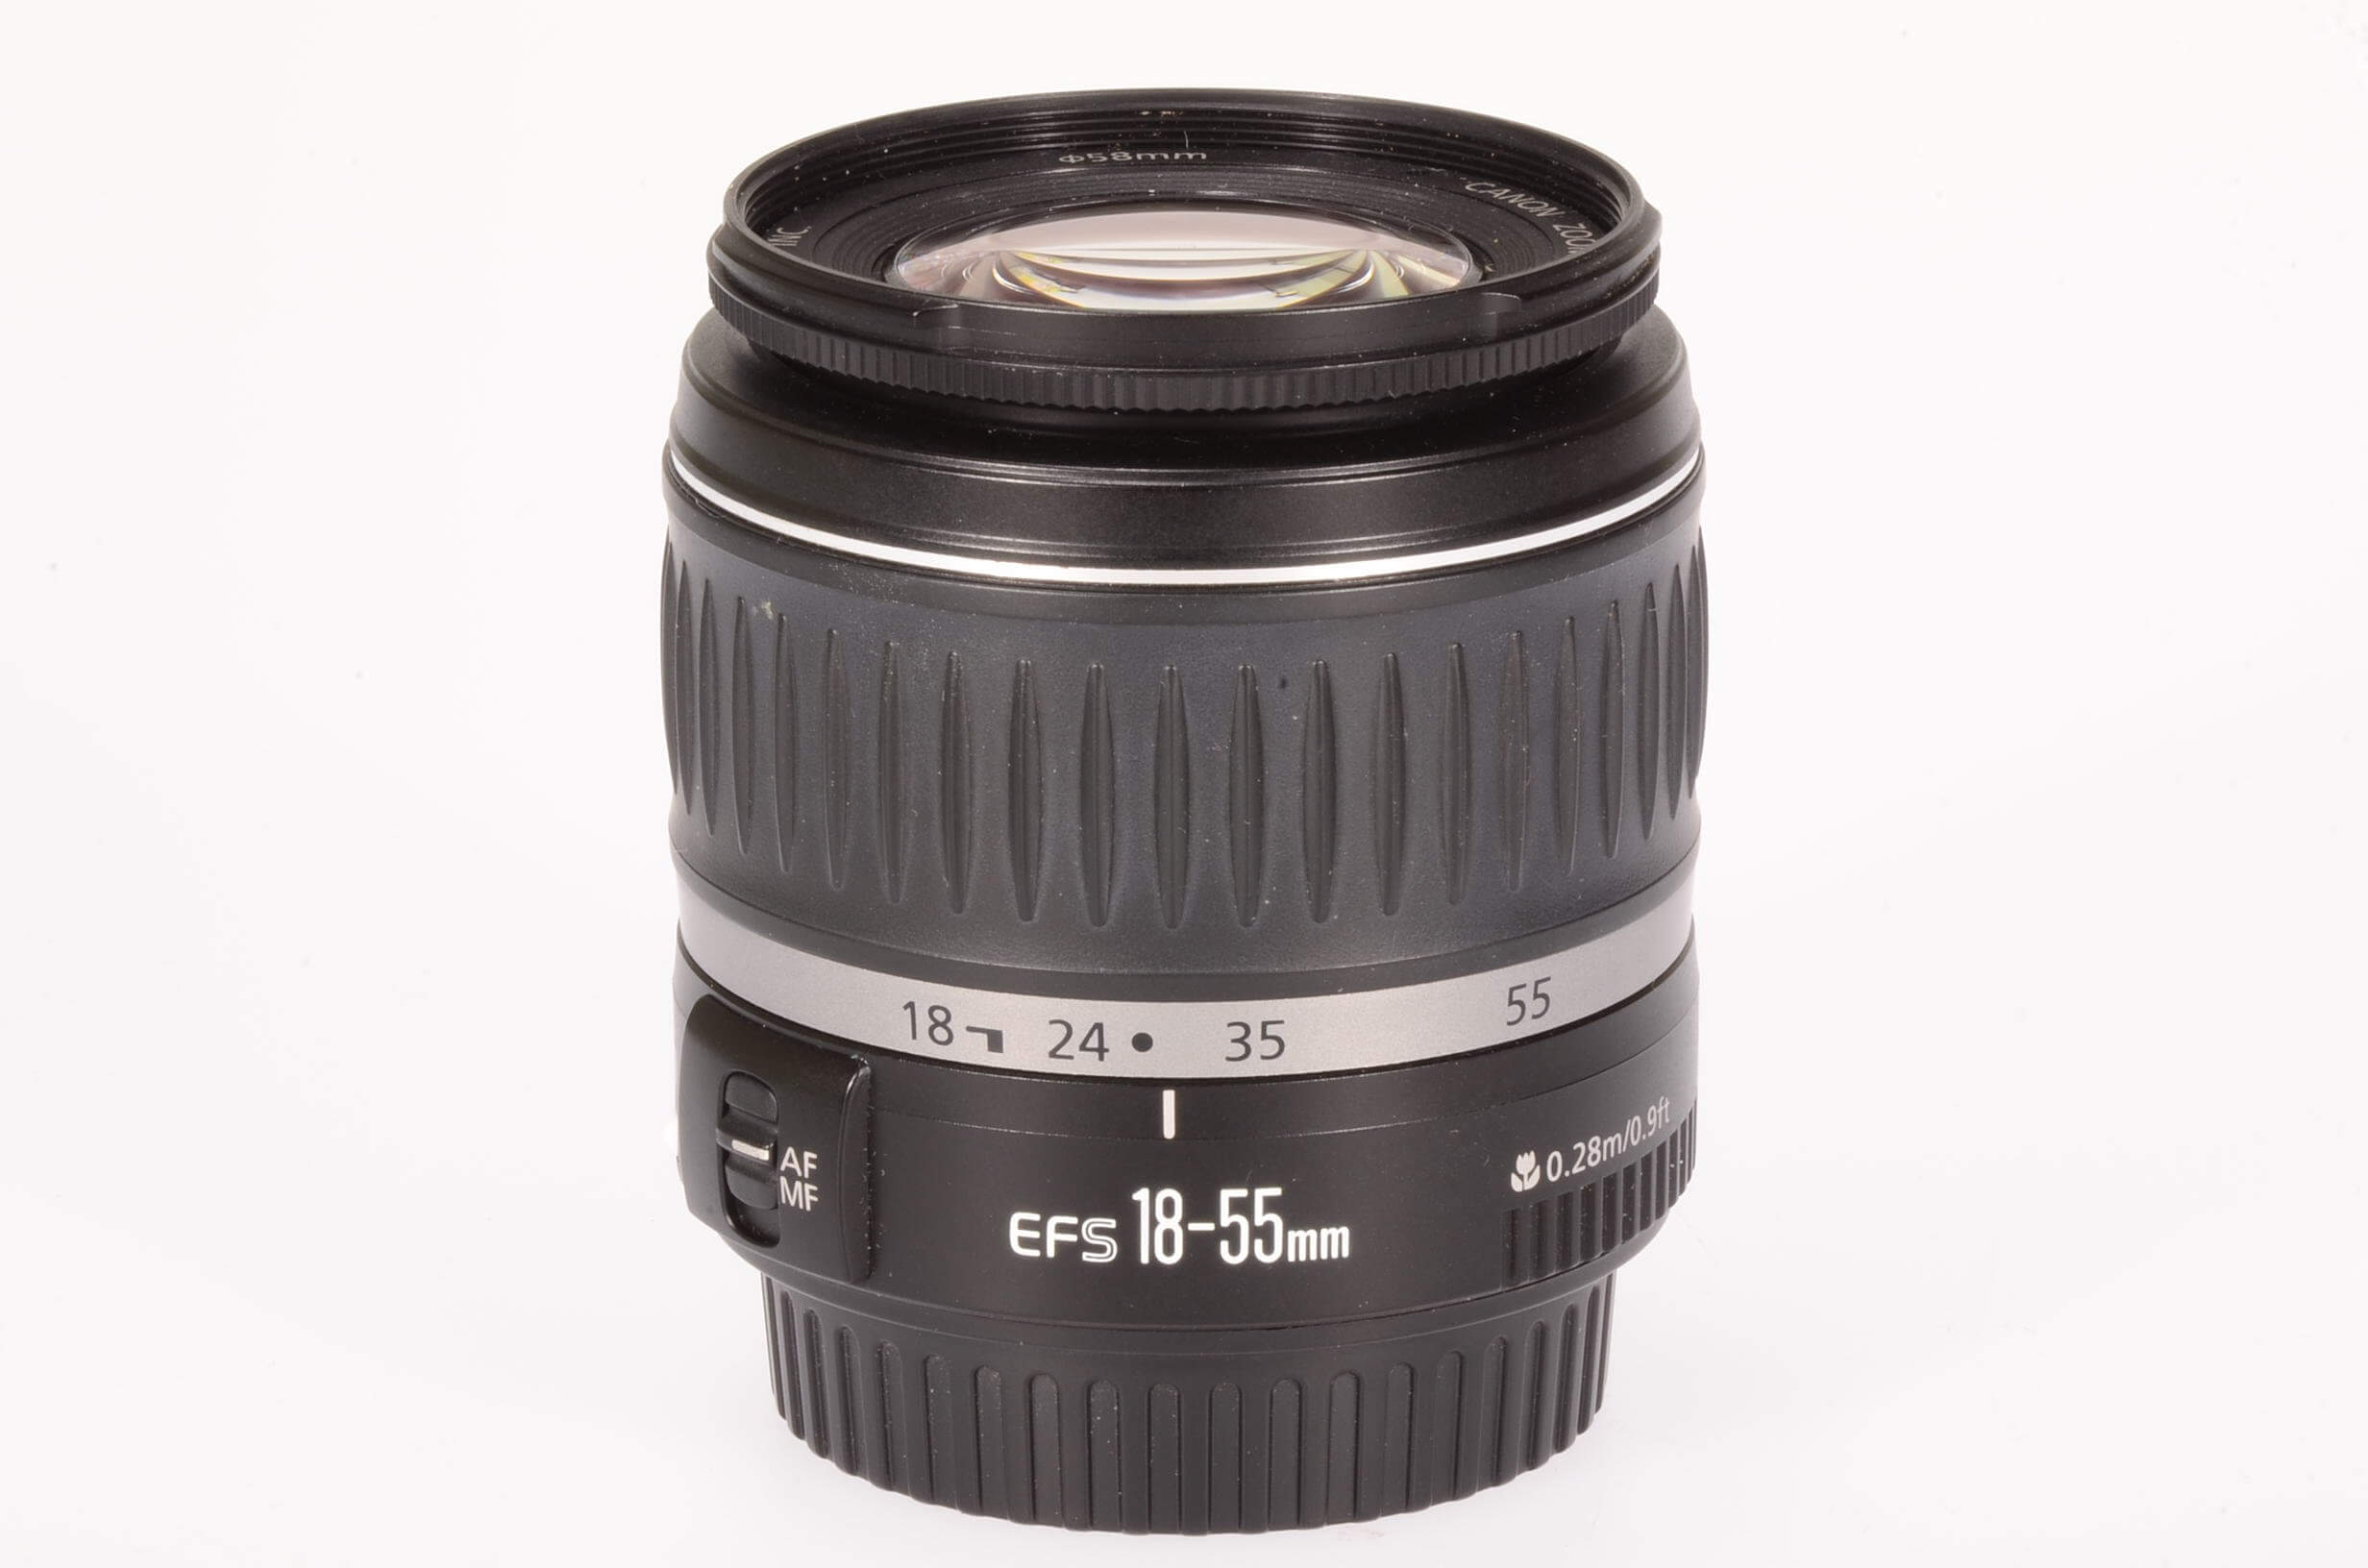 Canon 18-55mm f3.5-5.6 EF-S II, excellent condition